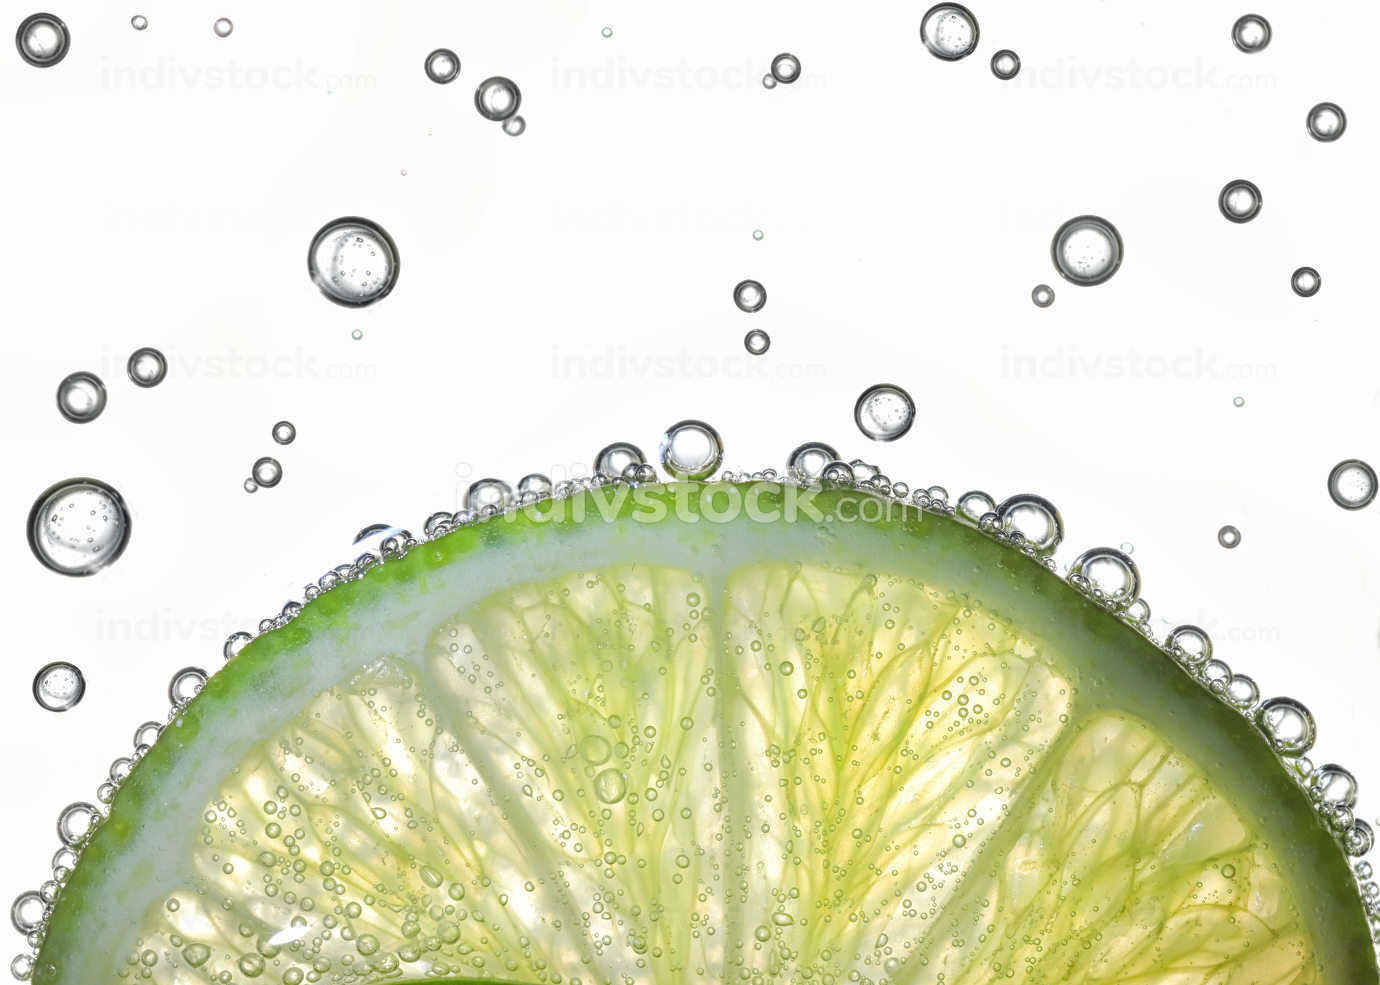 Lemon Slices In Water